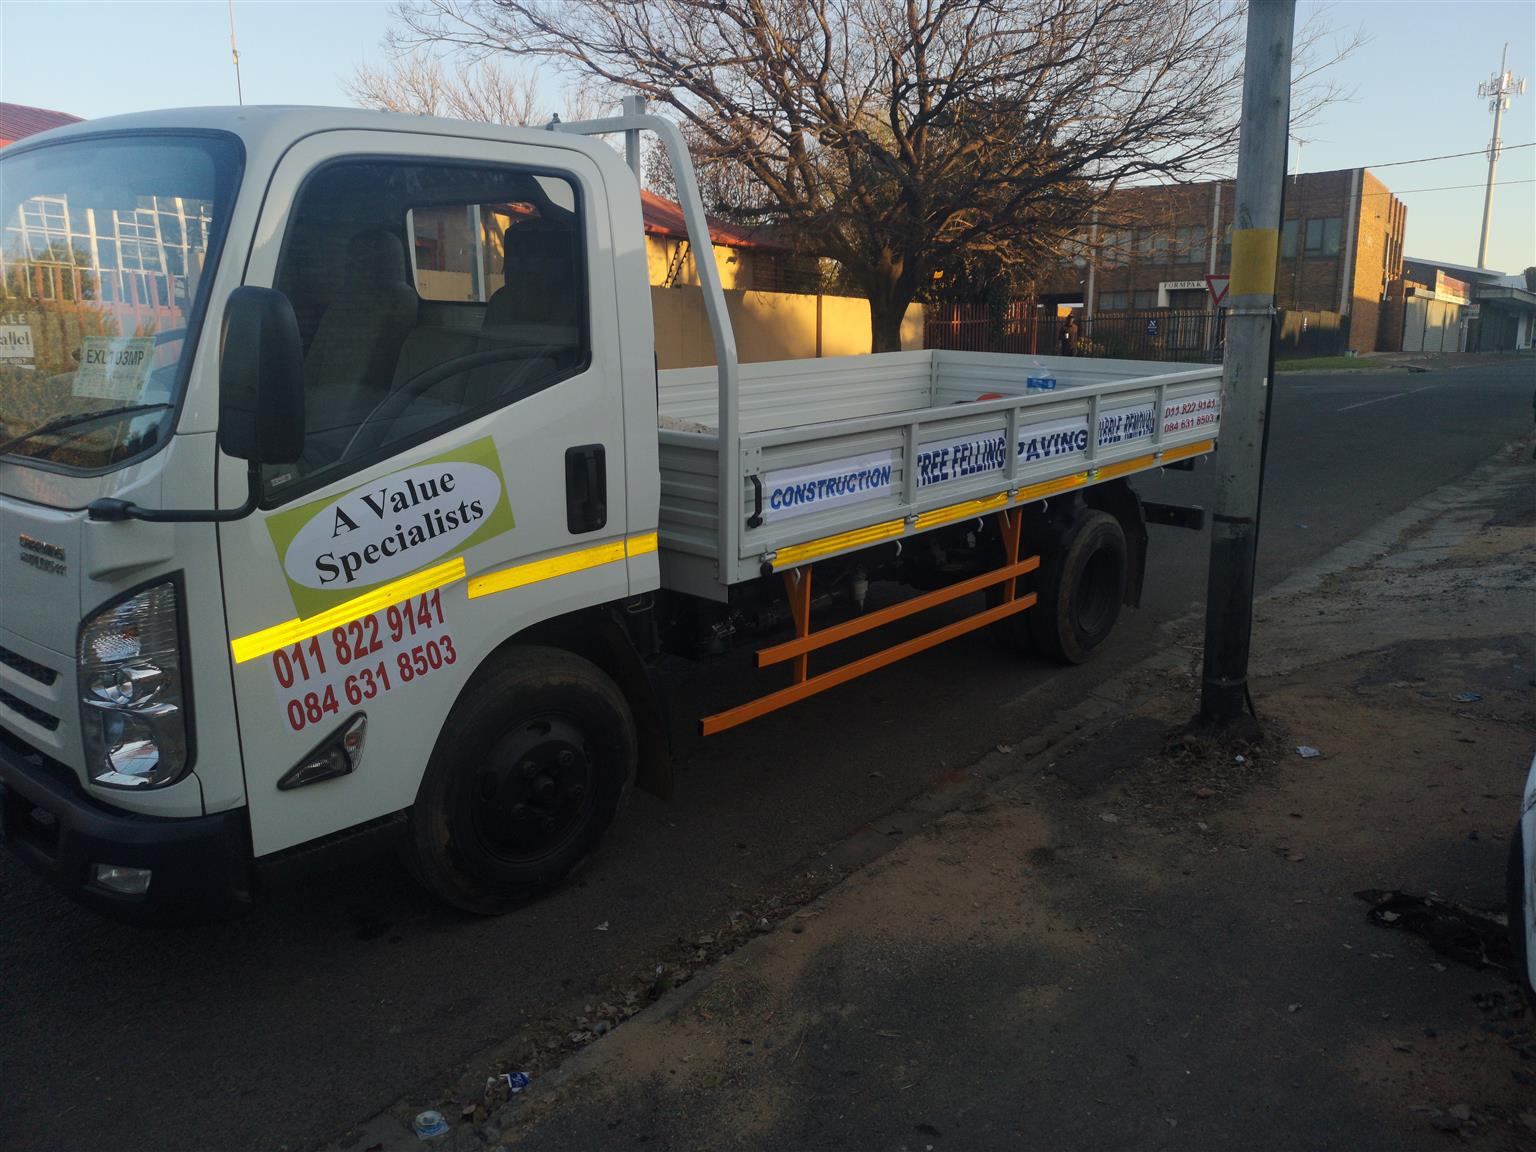 A-Value - 4 TON TRUCKS FOR HIRE